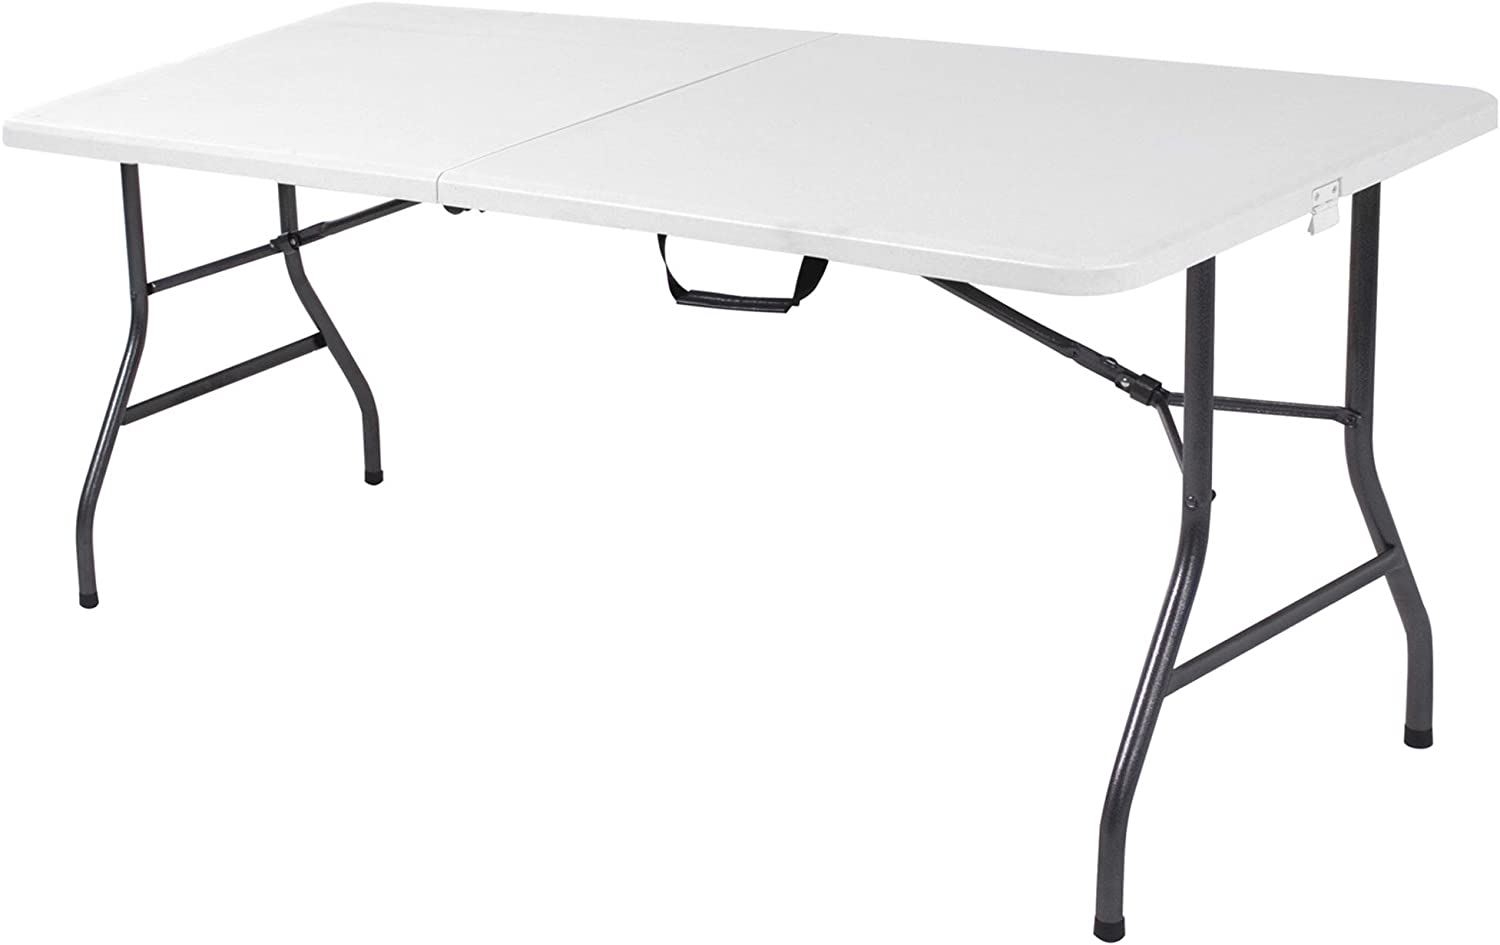 Cosco Deluxe 6 Foot Folding Table